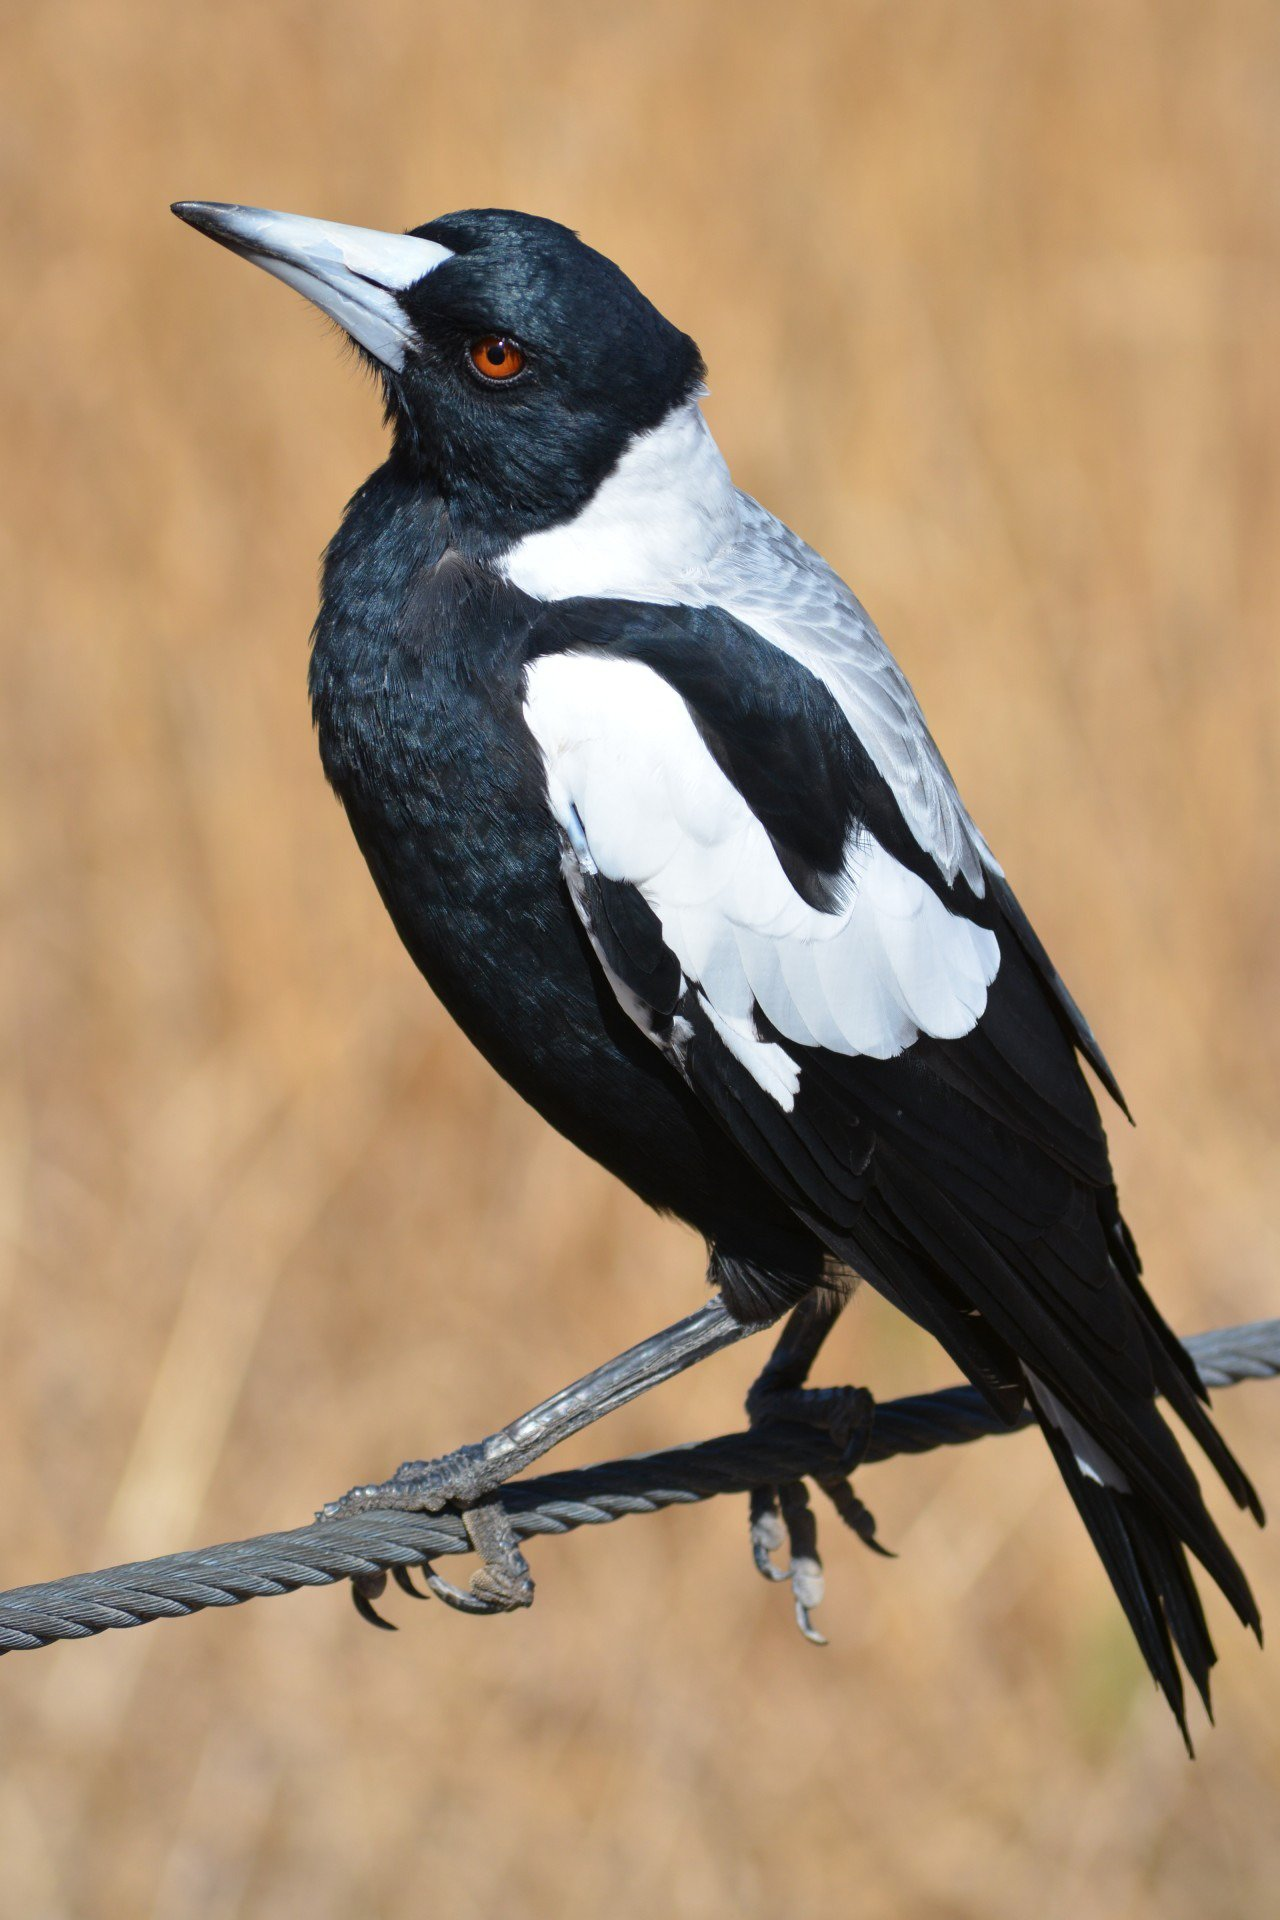 Magpie - Sitting on fence